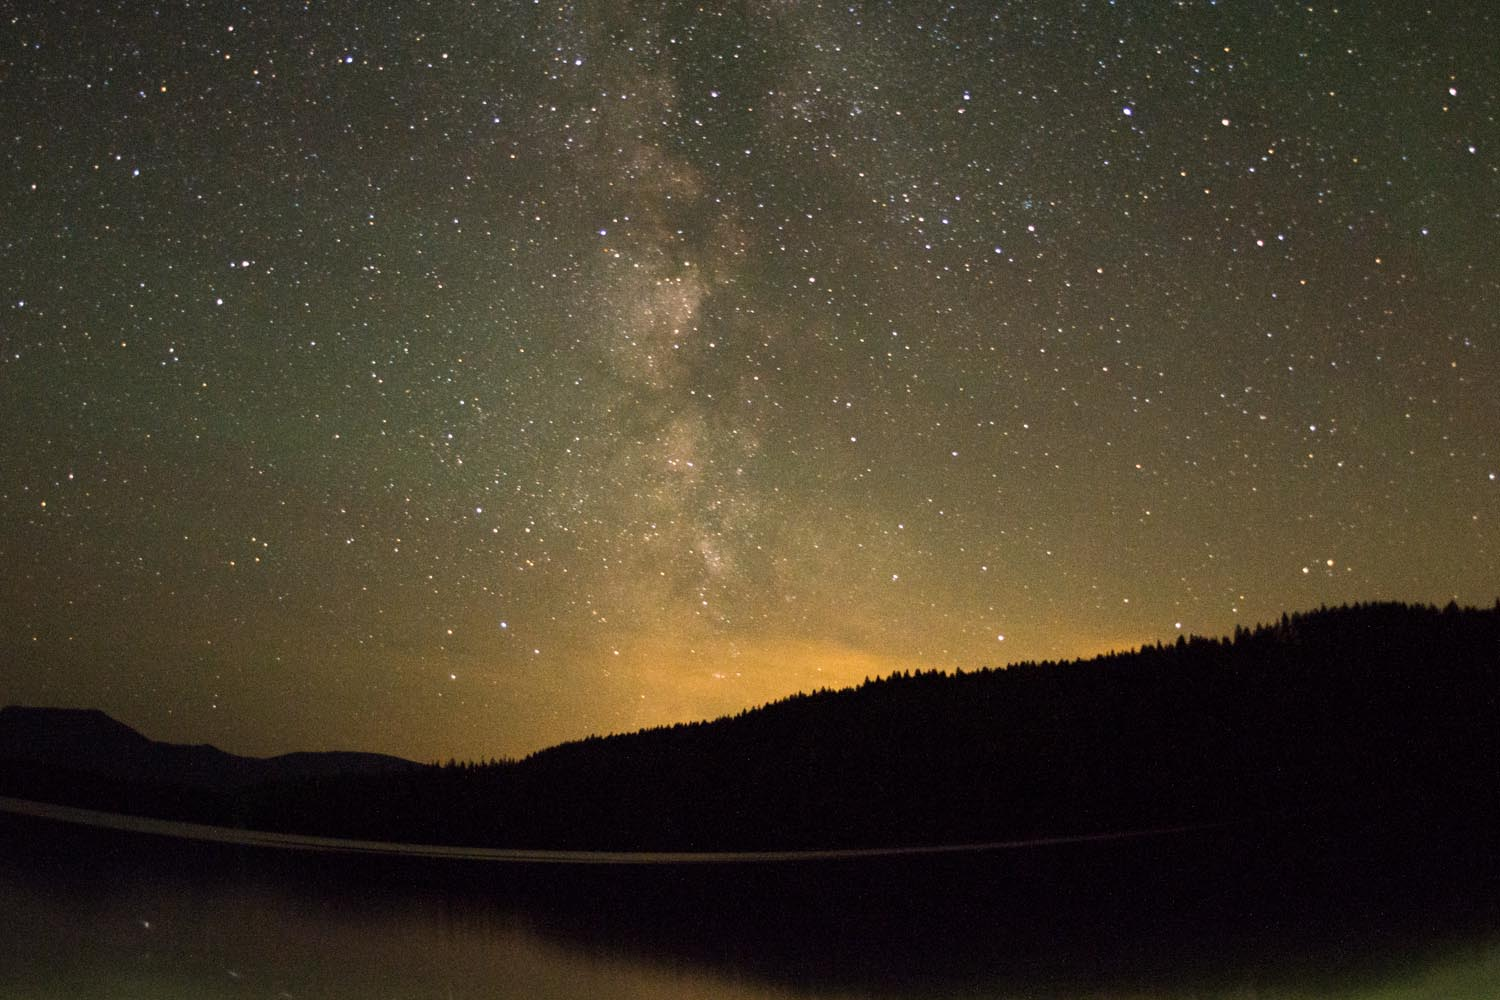 Milky Way over Pend Oreille Lake, Idaho